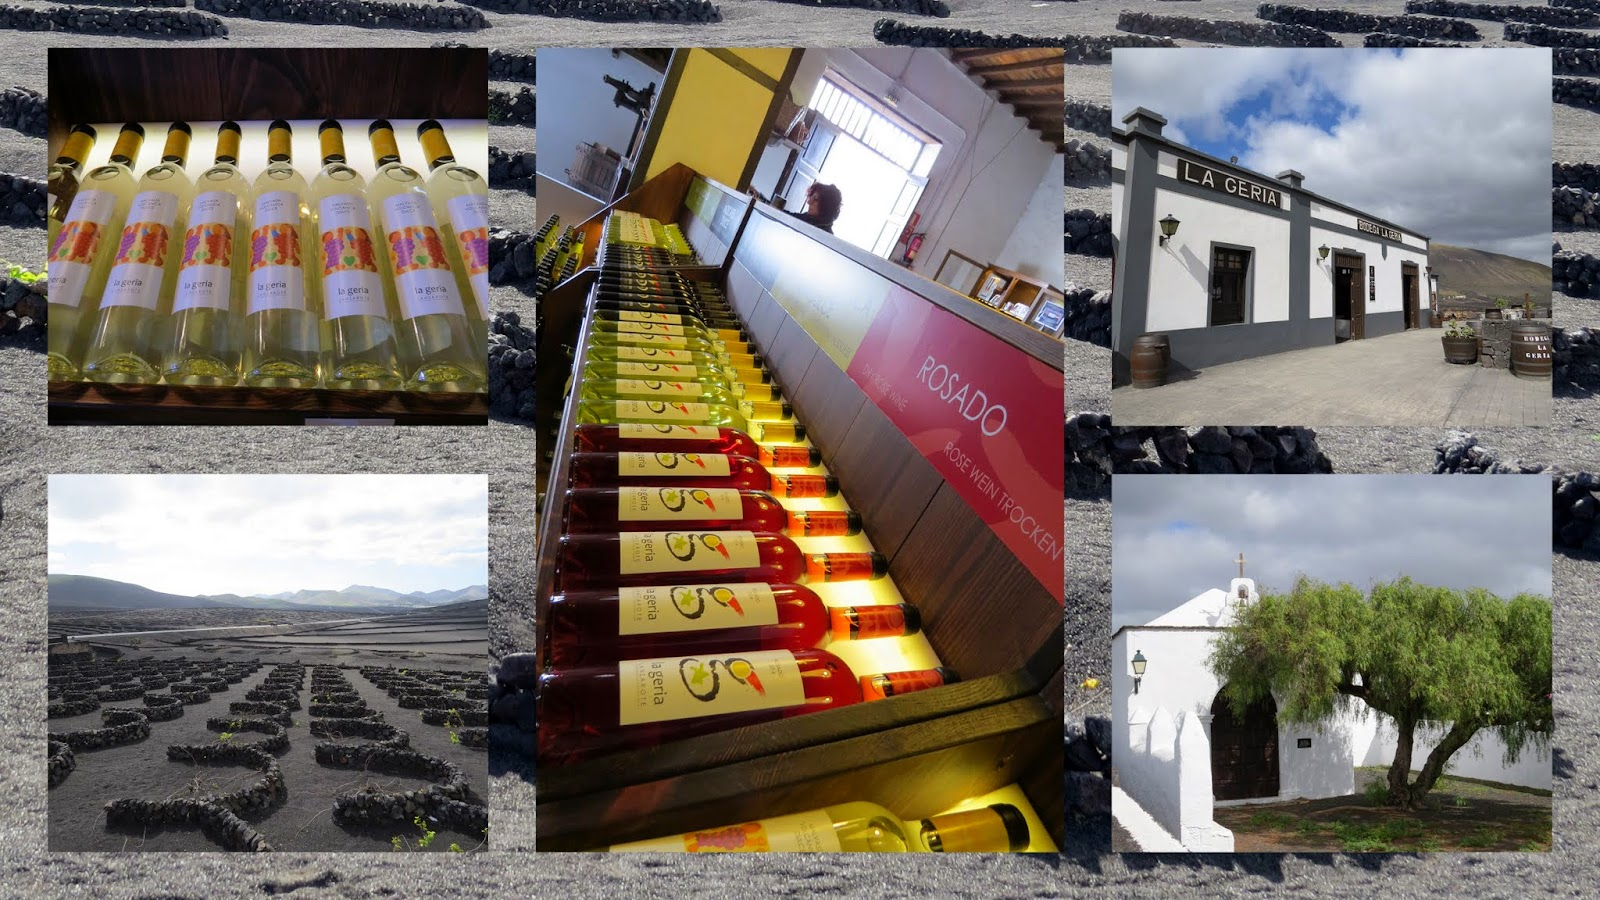 Lanzarote Wine: La Geria Winery